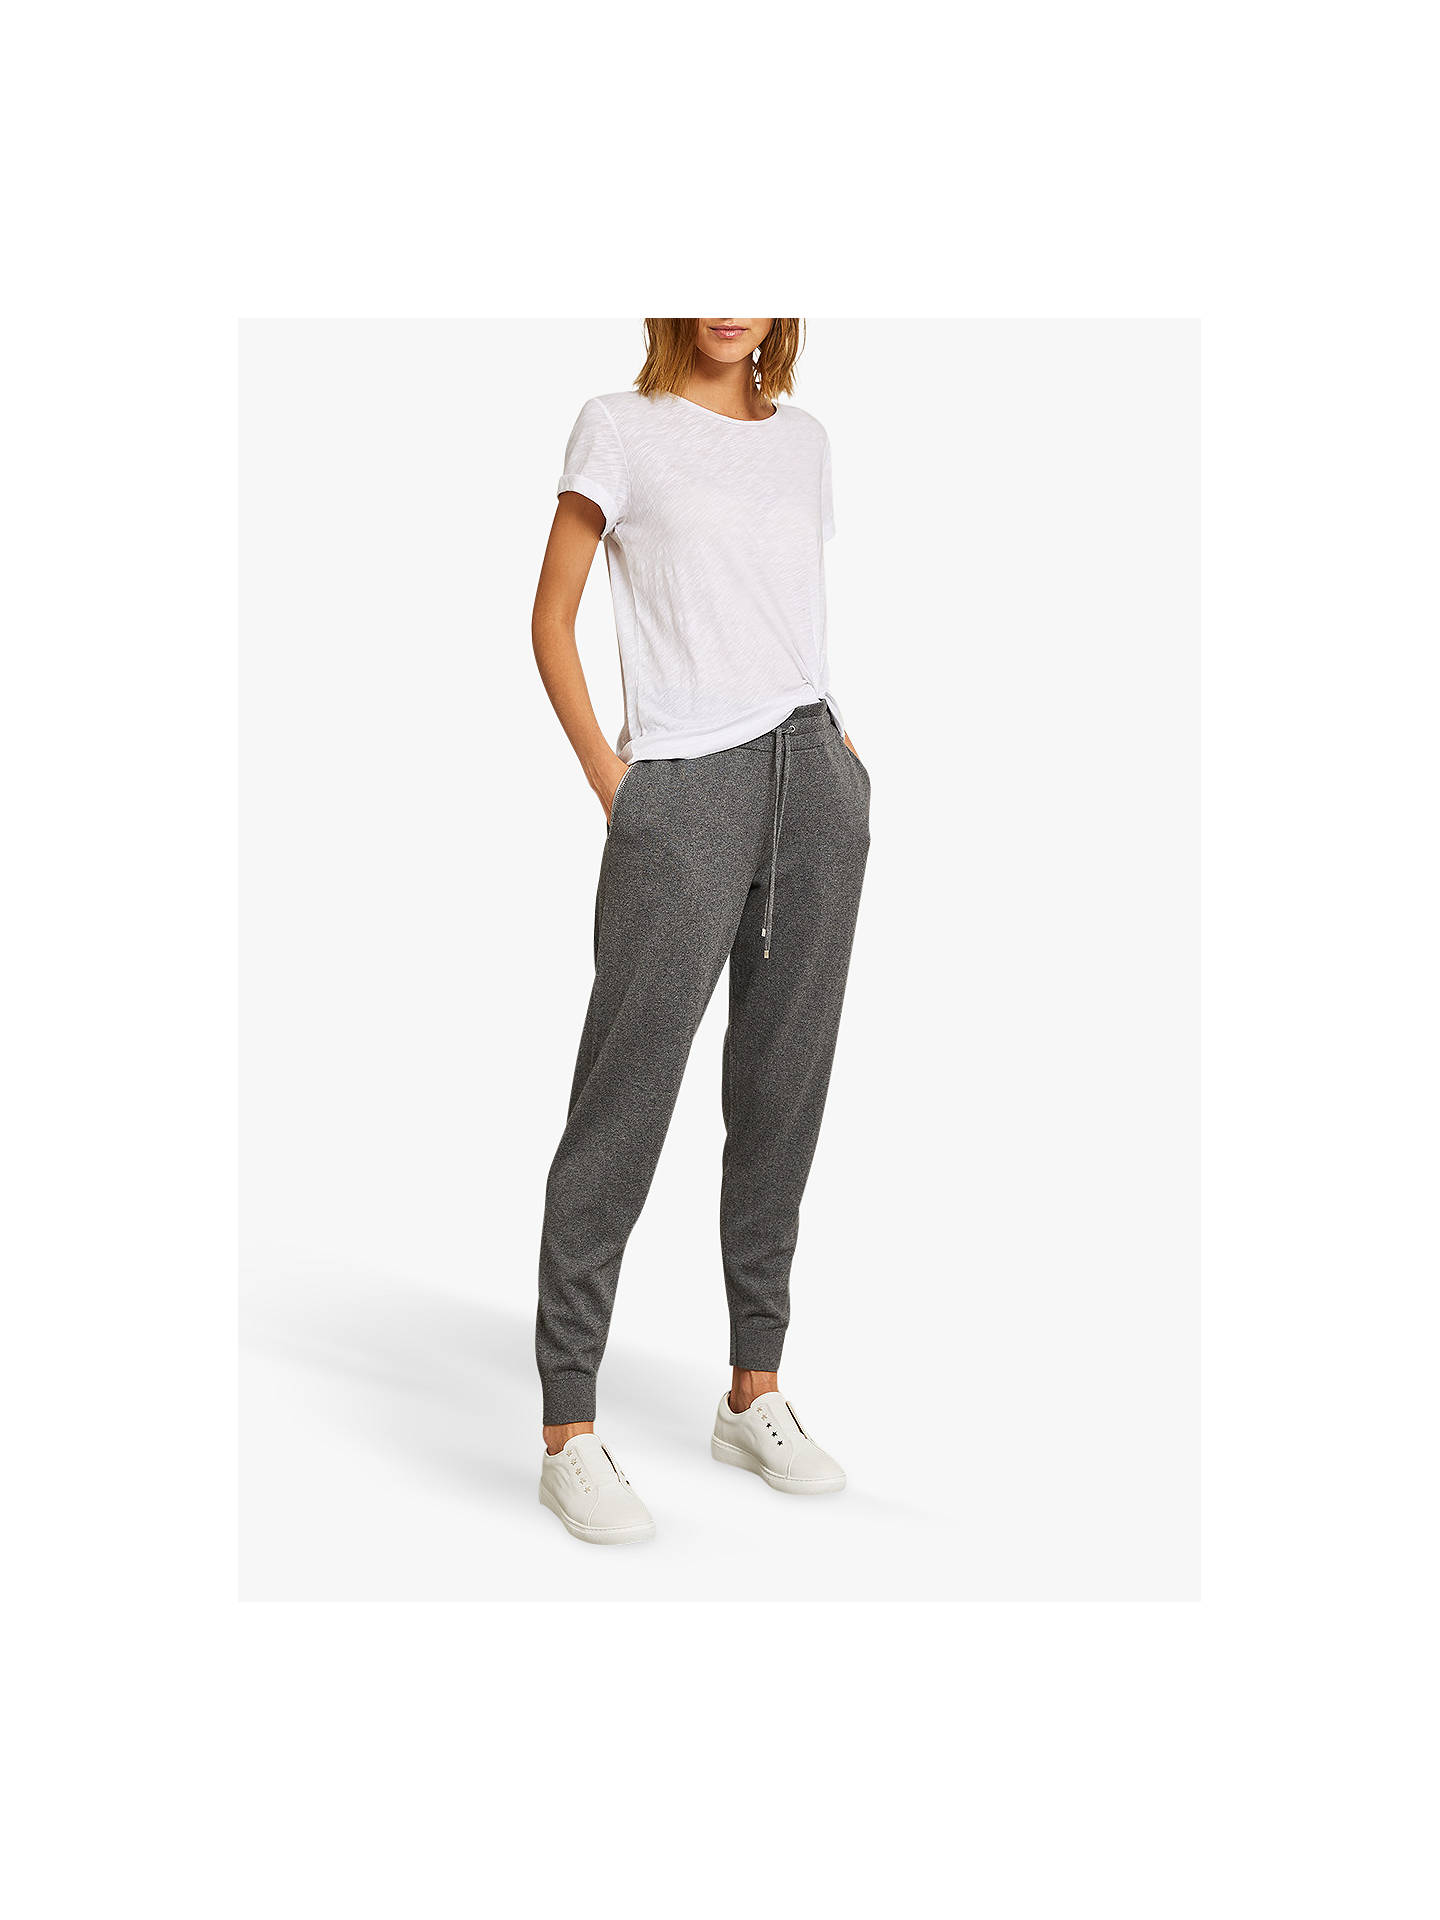 BuyMint Velvet Cotton Cashmere Jogger, Dark Grey, 14R Online at johnlewis.com